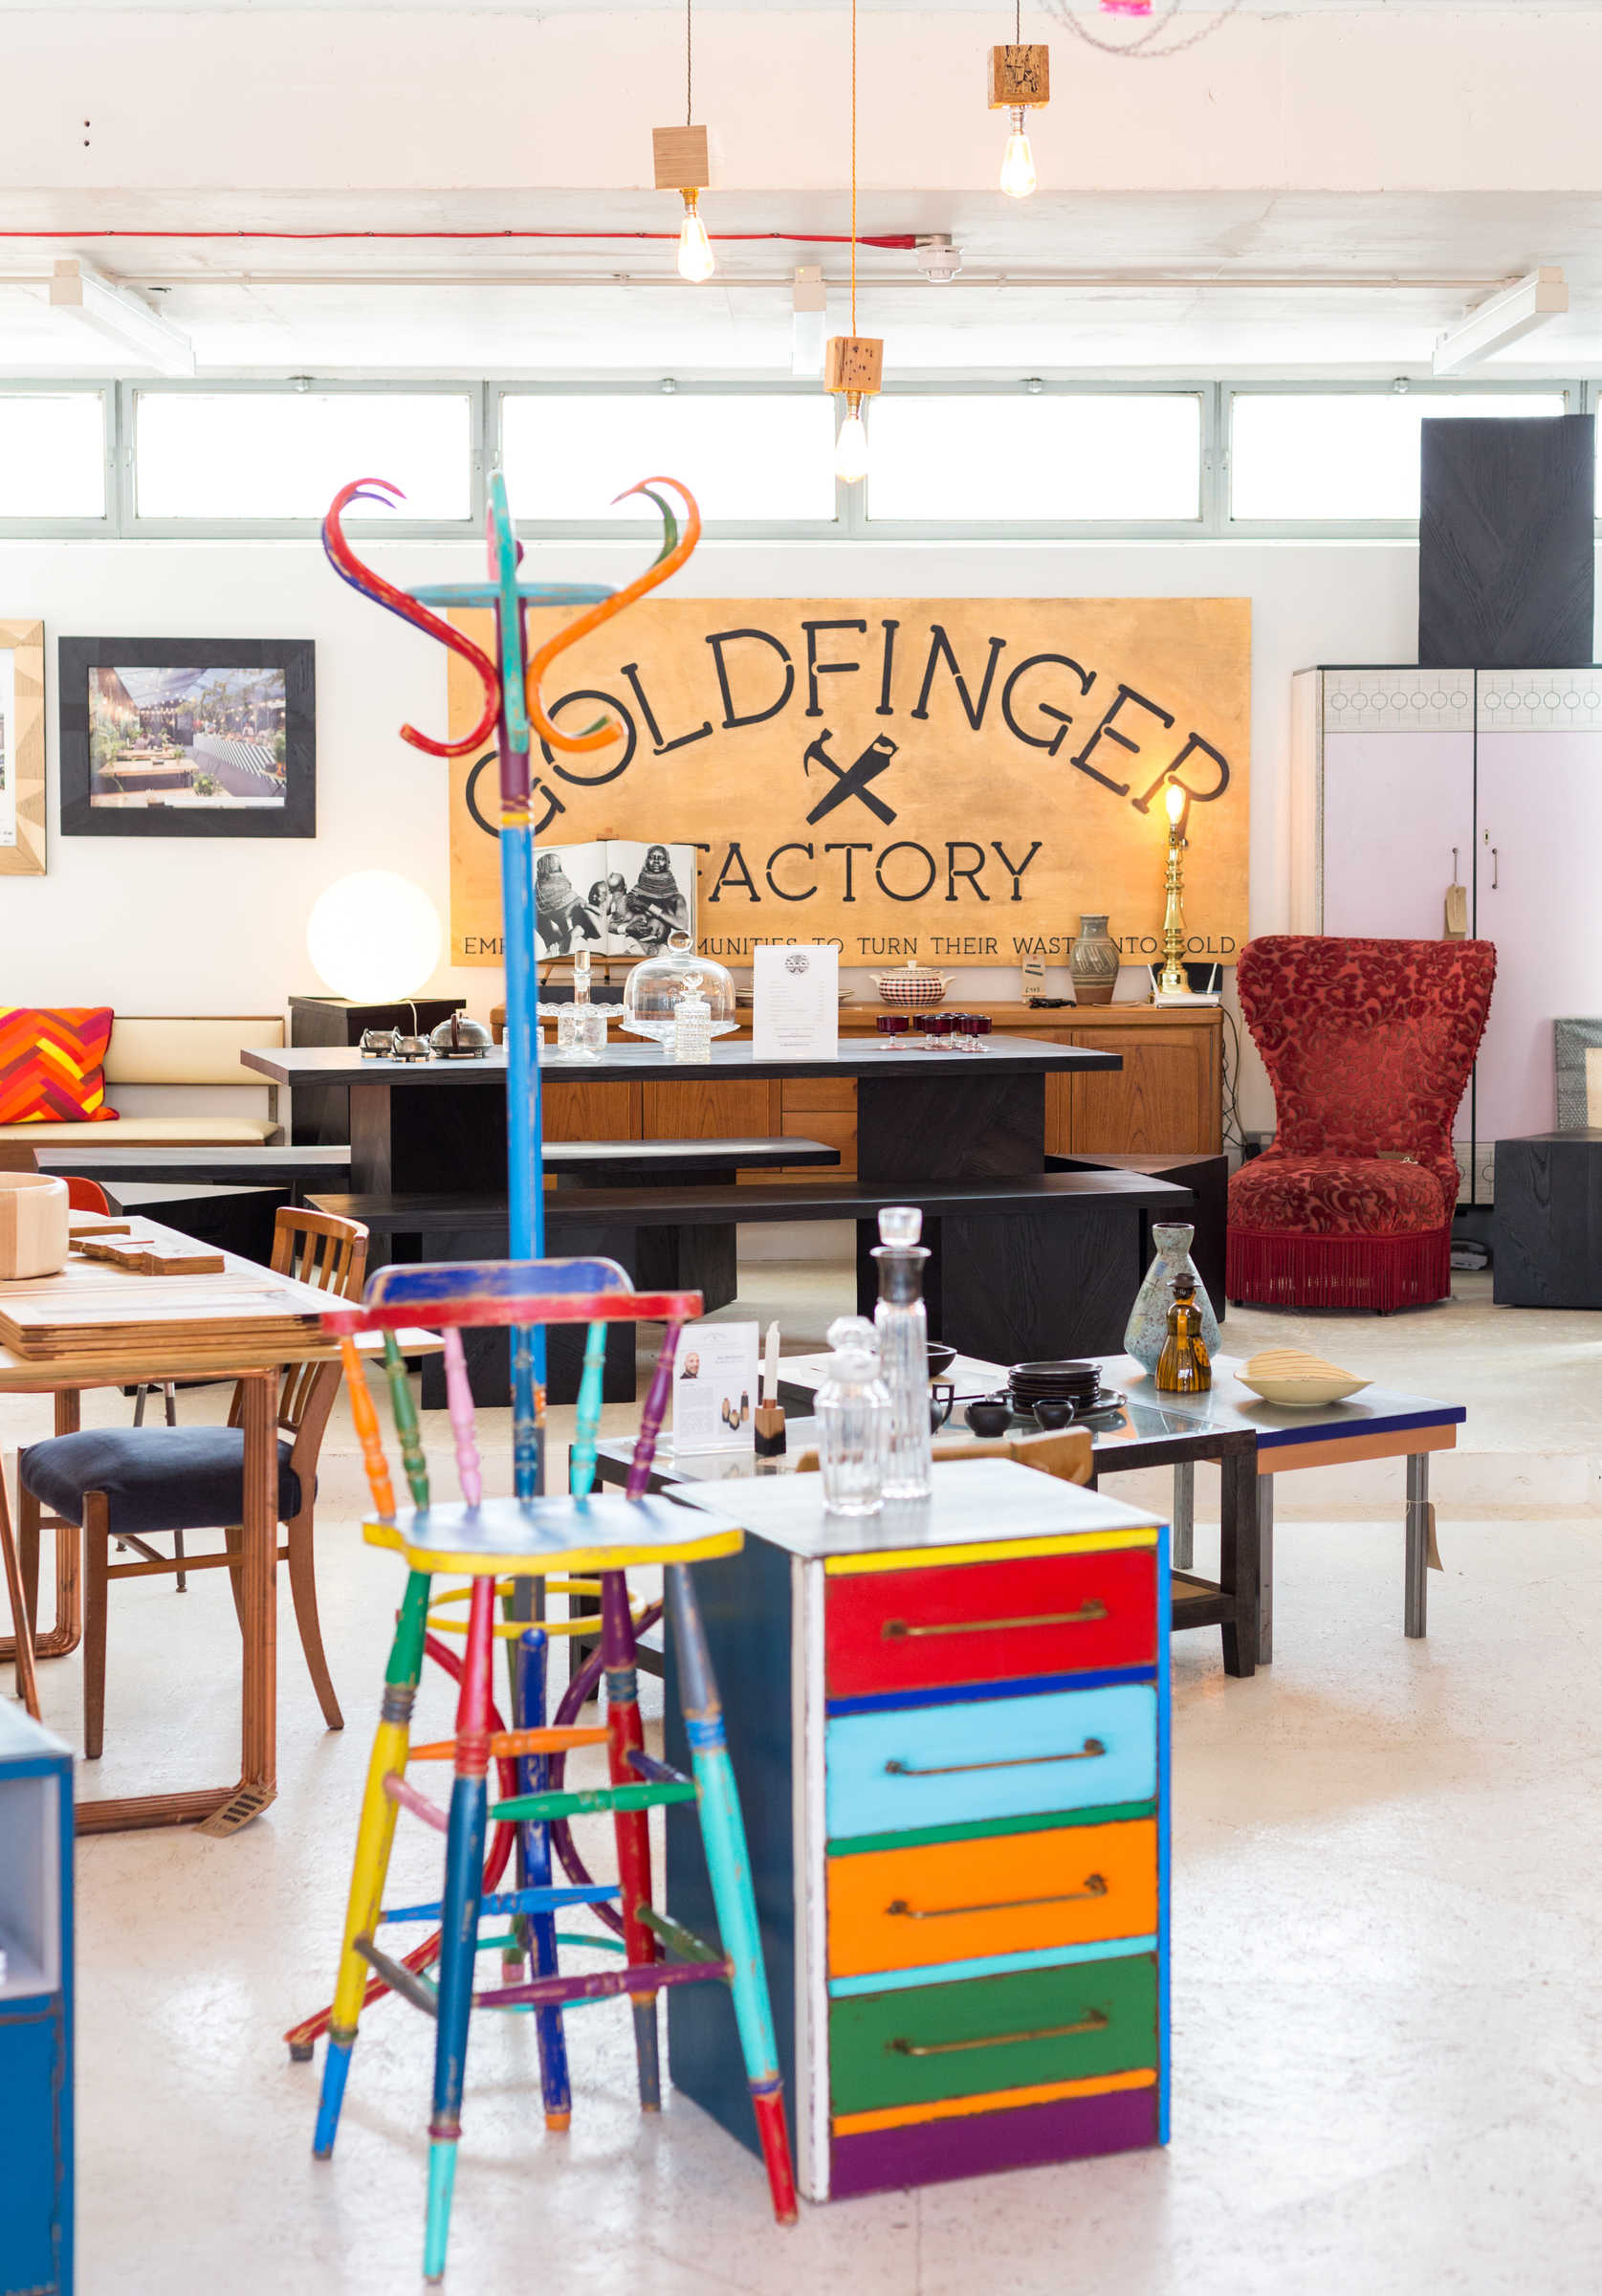 heals-made-in-london-Goldfinger-Factory-4